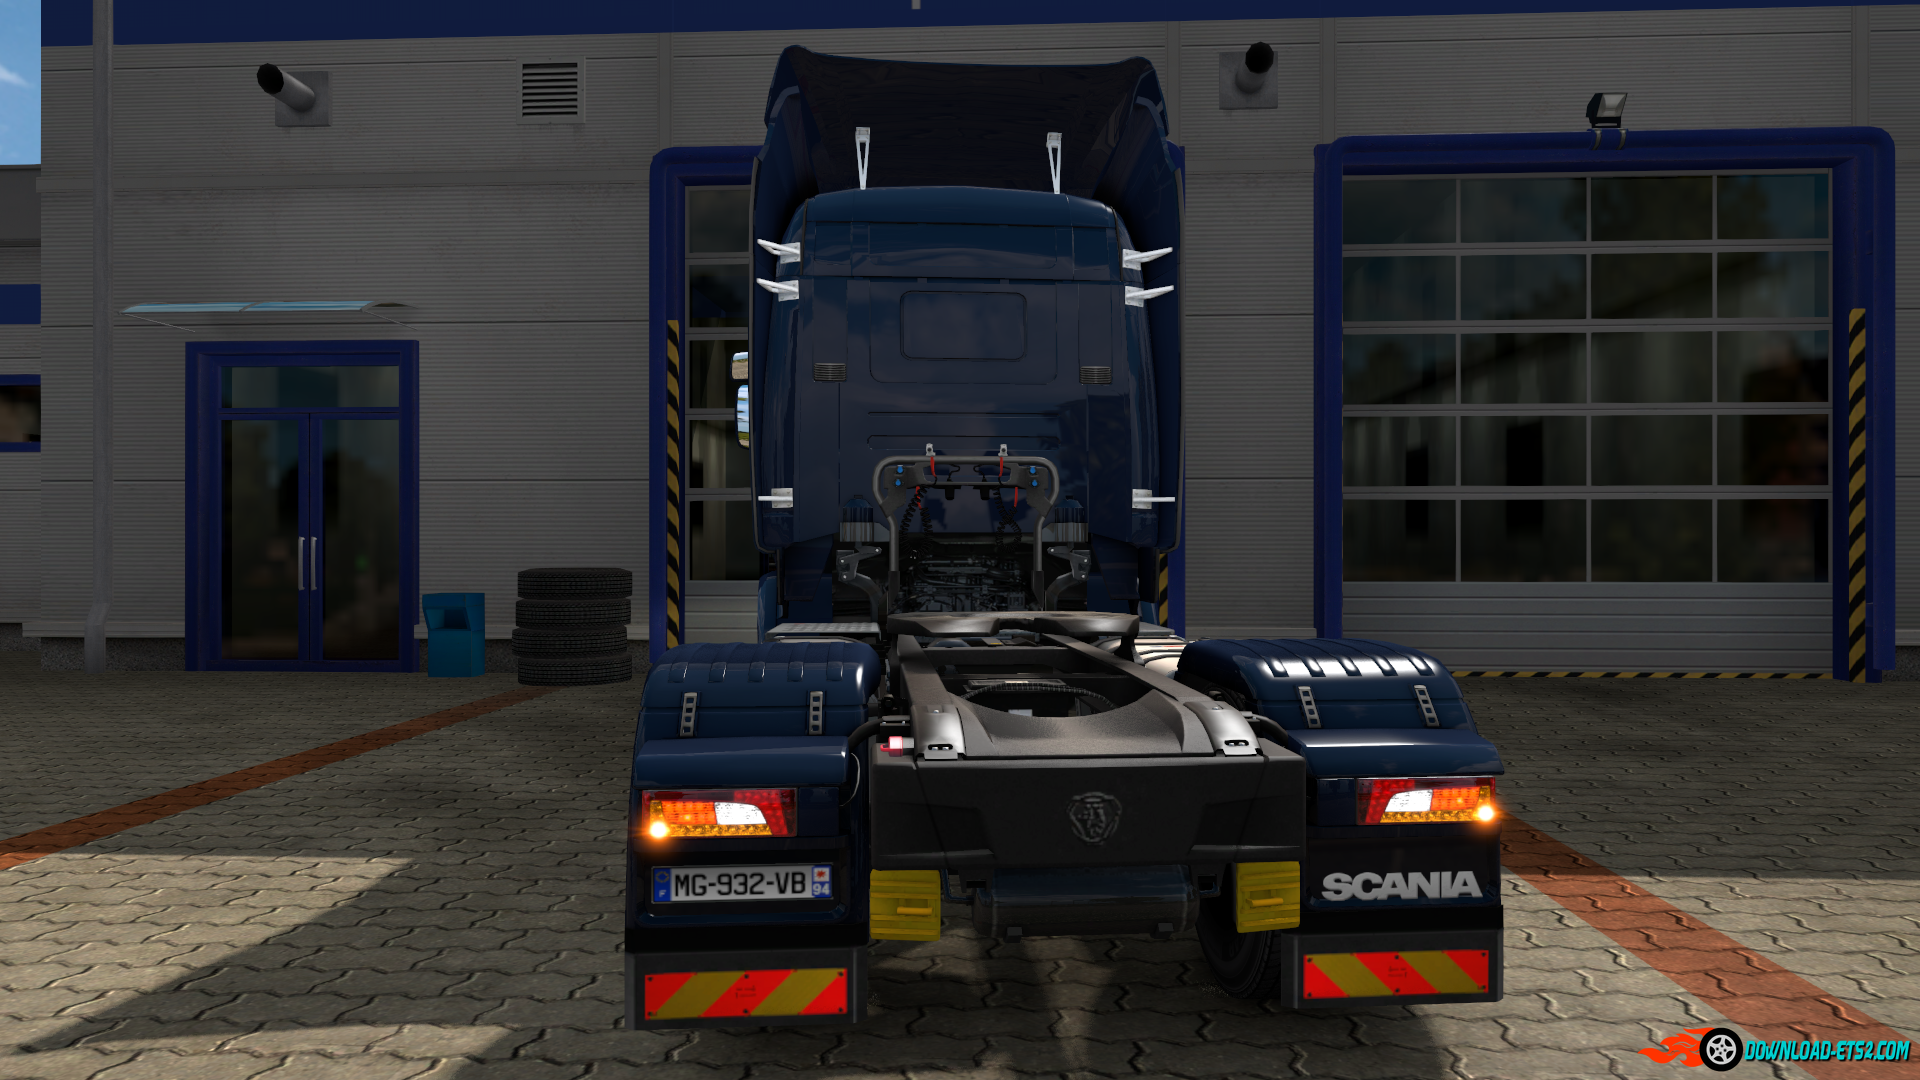 Scania Streamline backlights - lightmask reworked